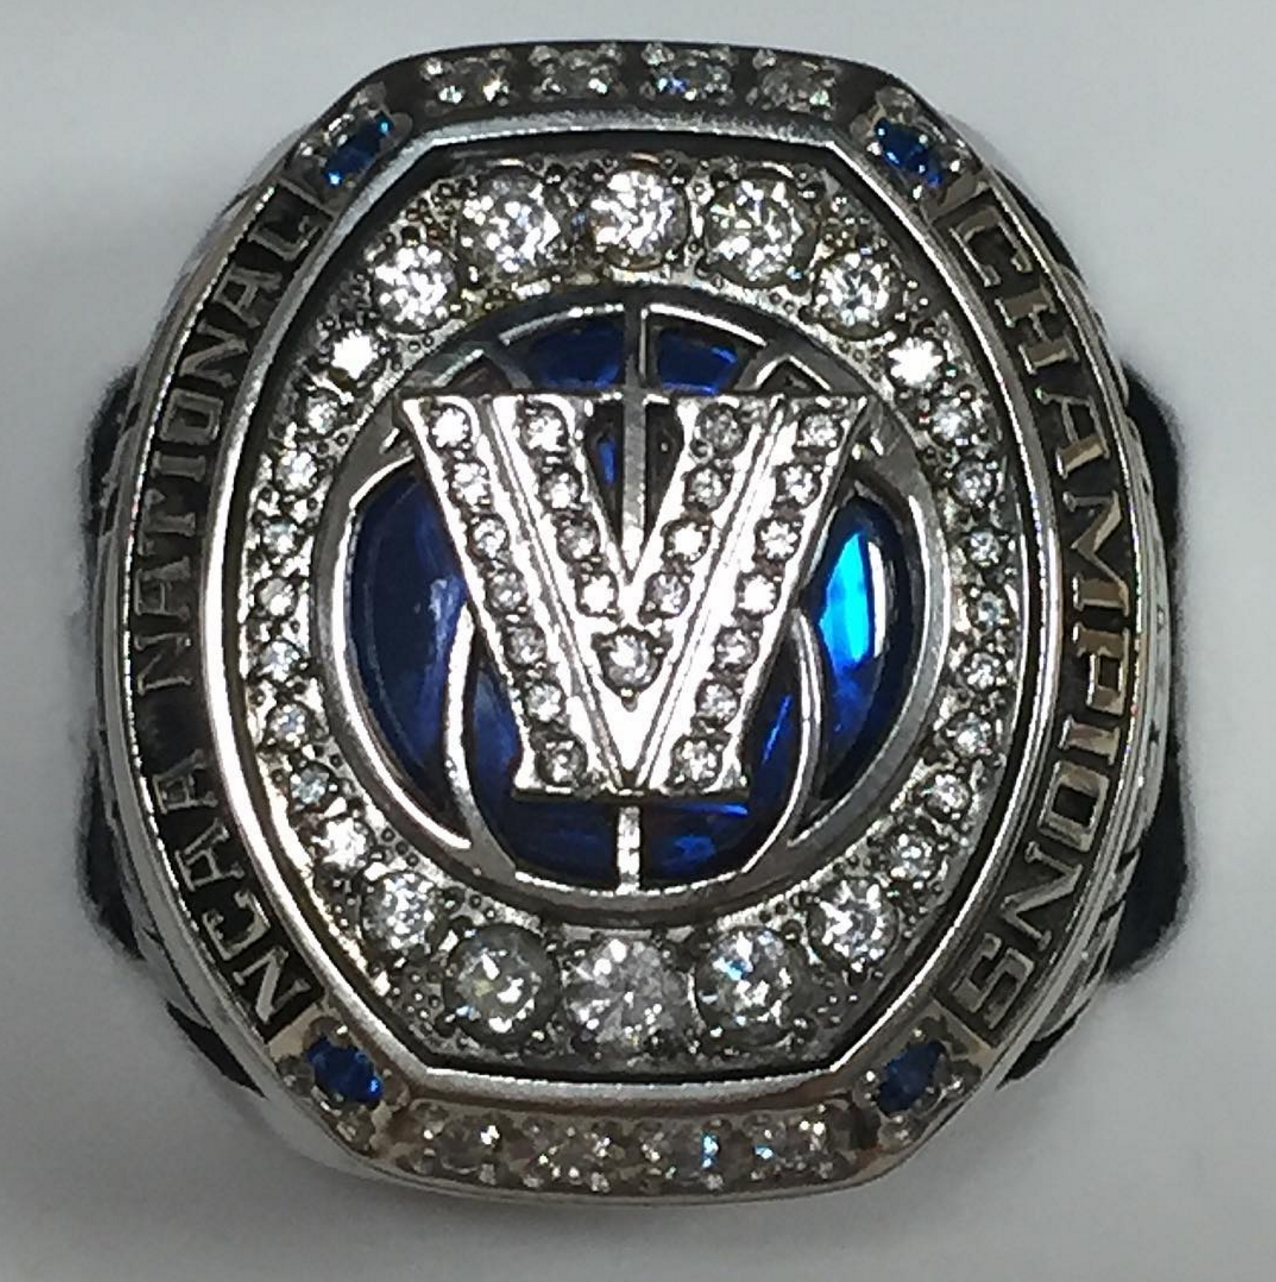 mariota mvp dhgate bowl product championship replica com ncaa duck rings ring rose marcus of university marcjacques oregon from